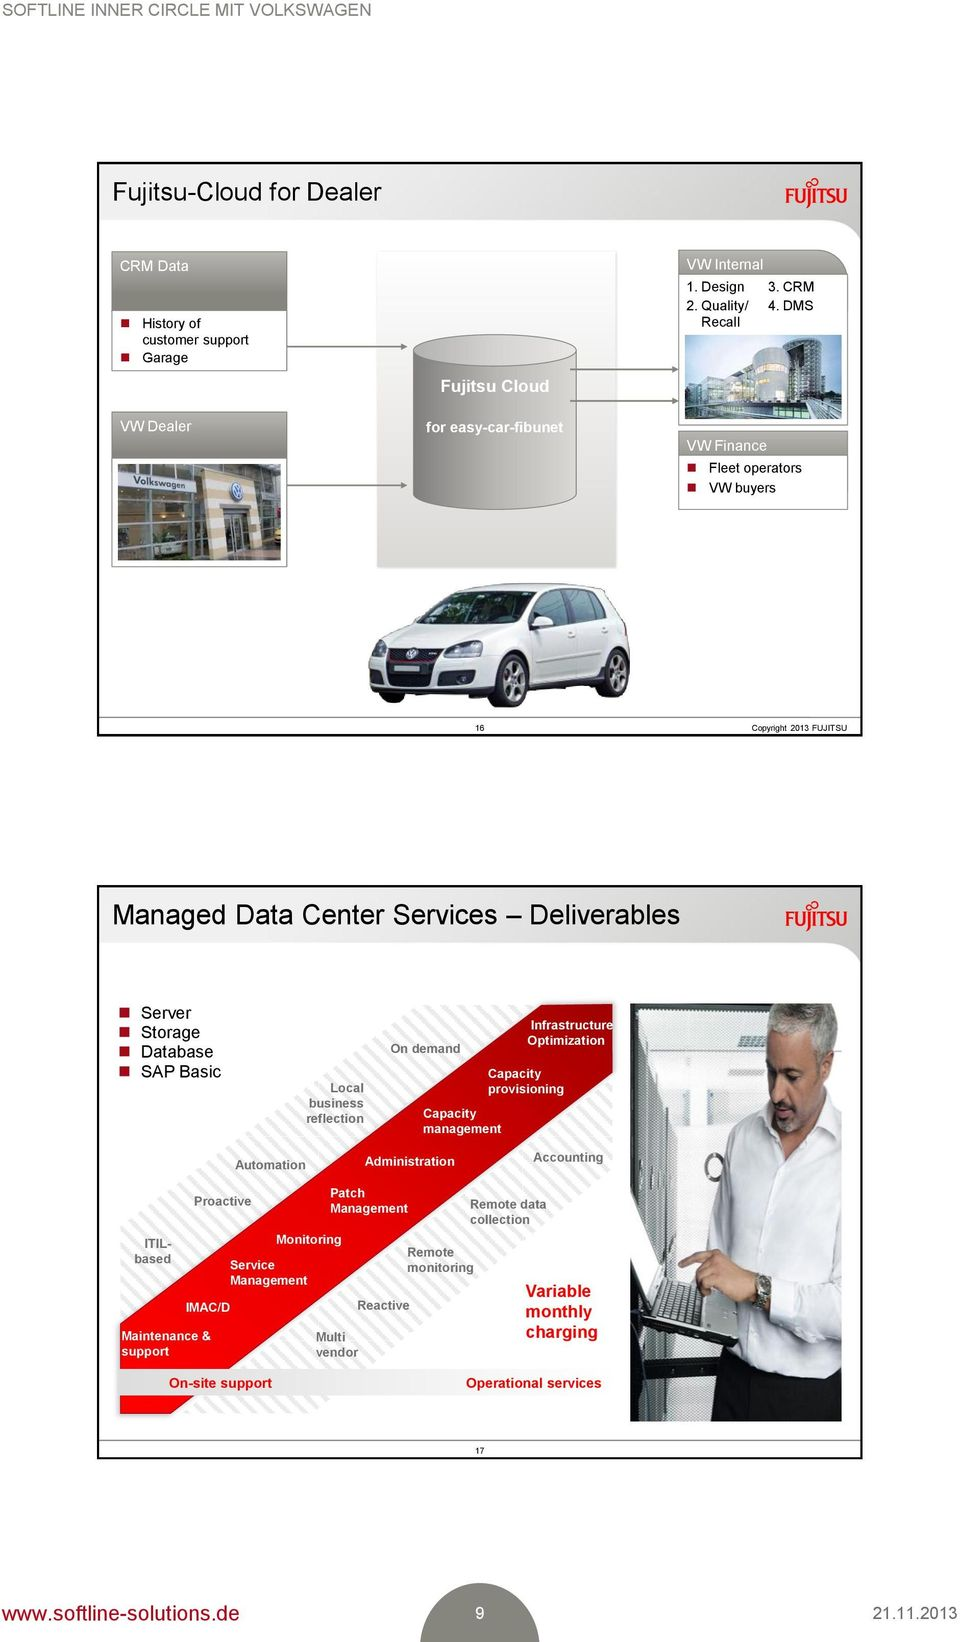 DMS Fleet operators VW buyers 16 Managed Data Center Deliverables Server Storage Database SAP Basic Local business reflection On demand Capacity management